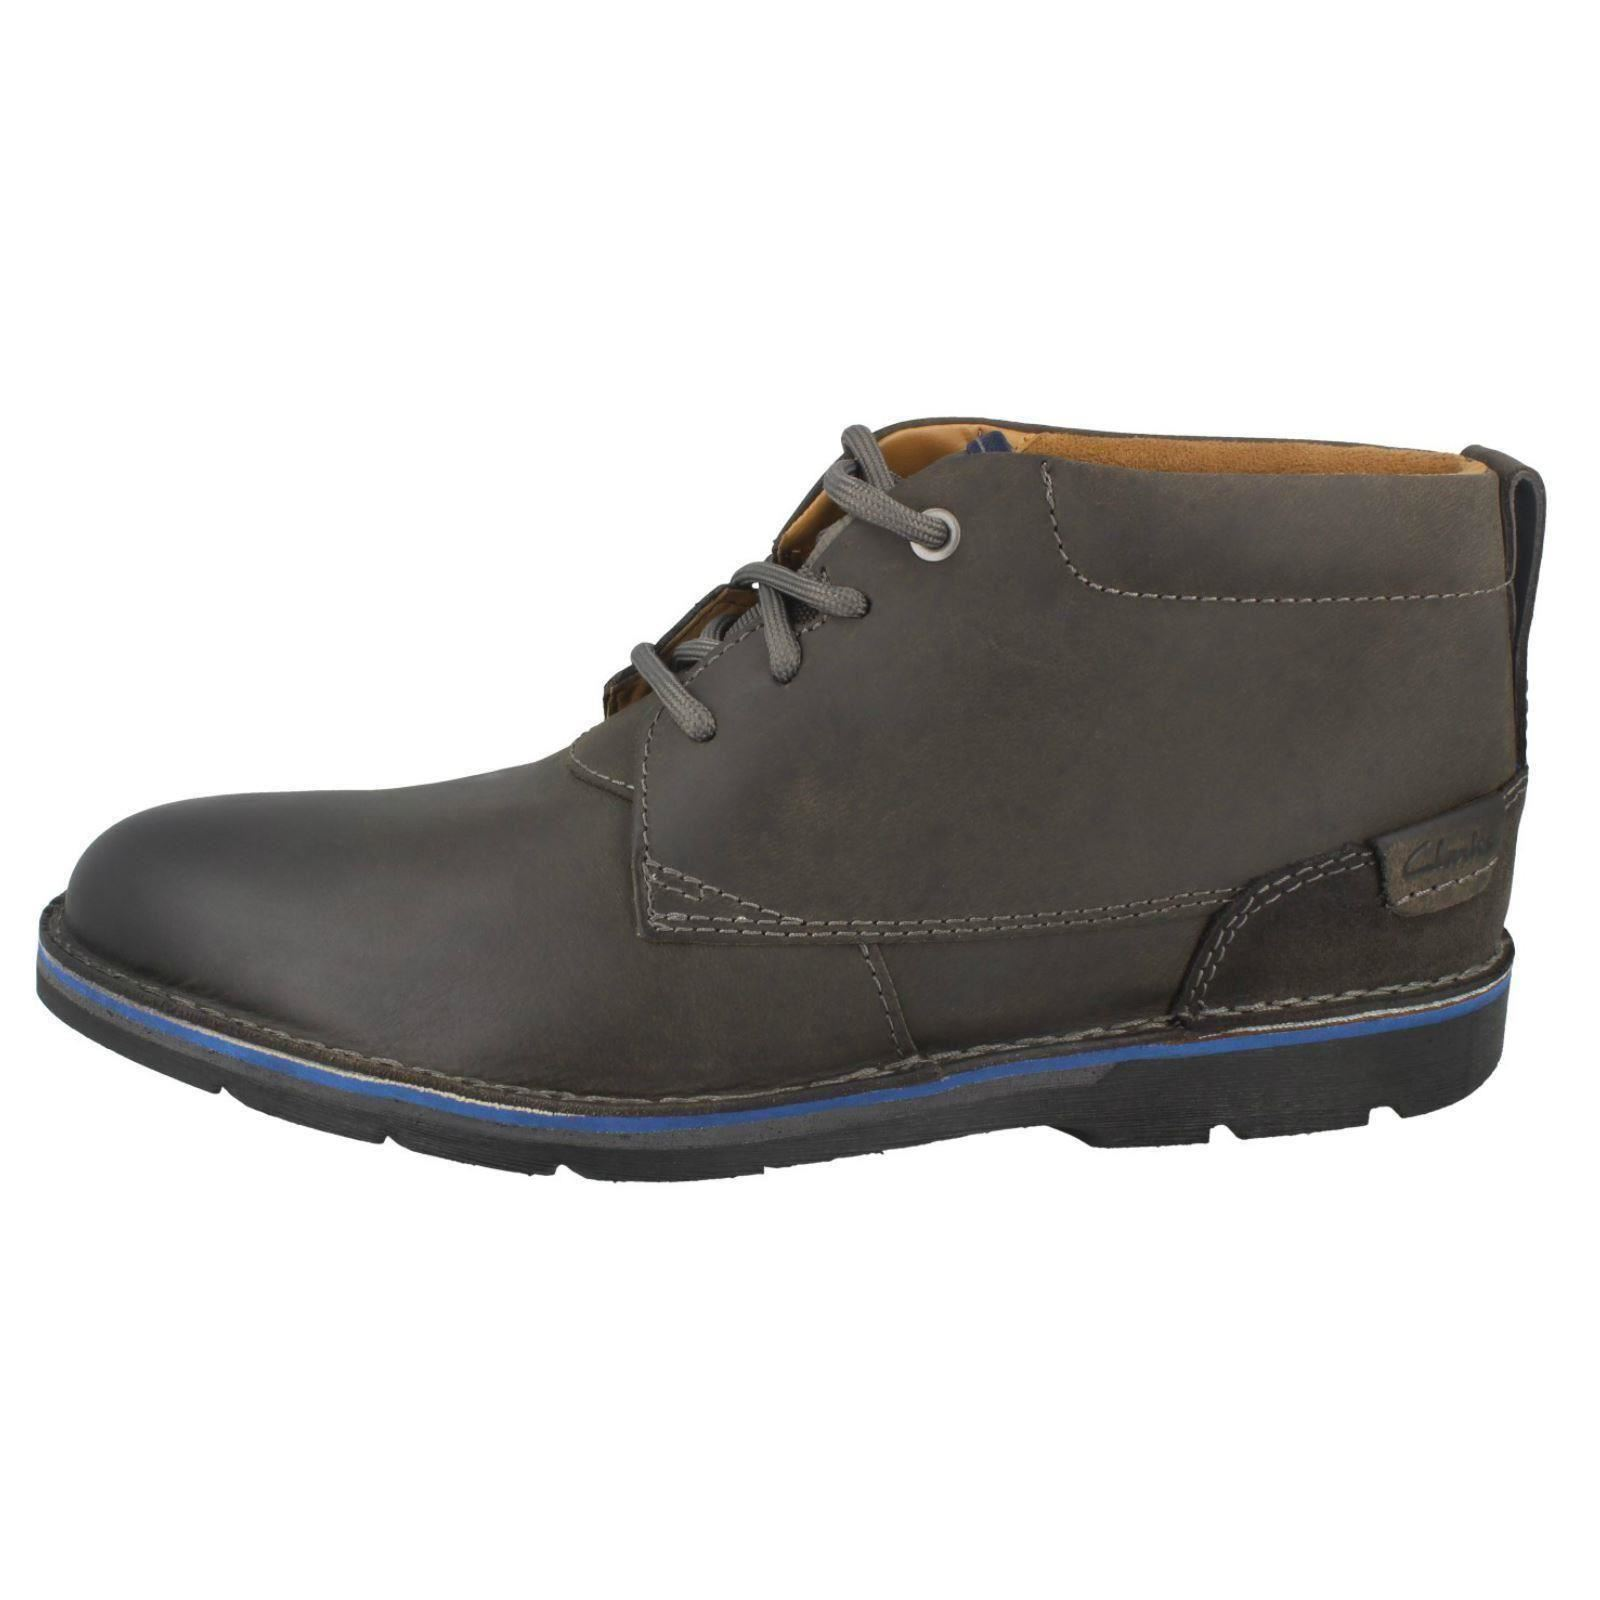 Mens Clarks Casual Boots Edgewick Mid